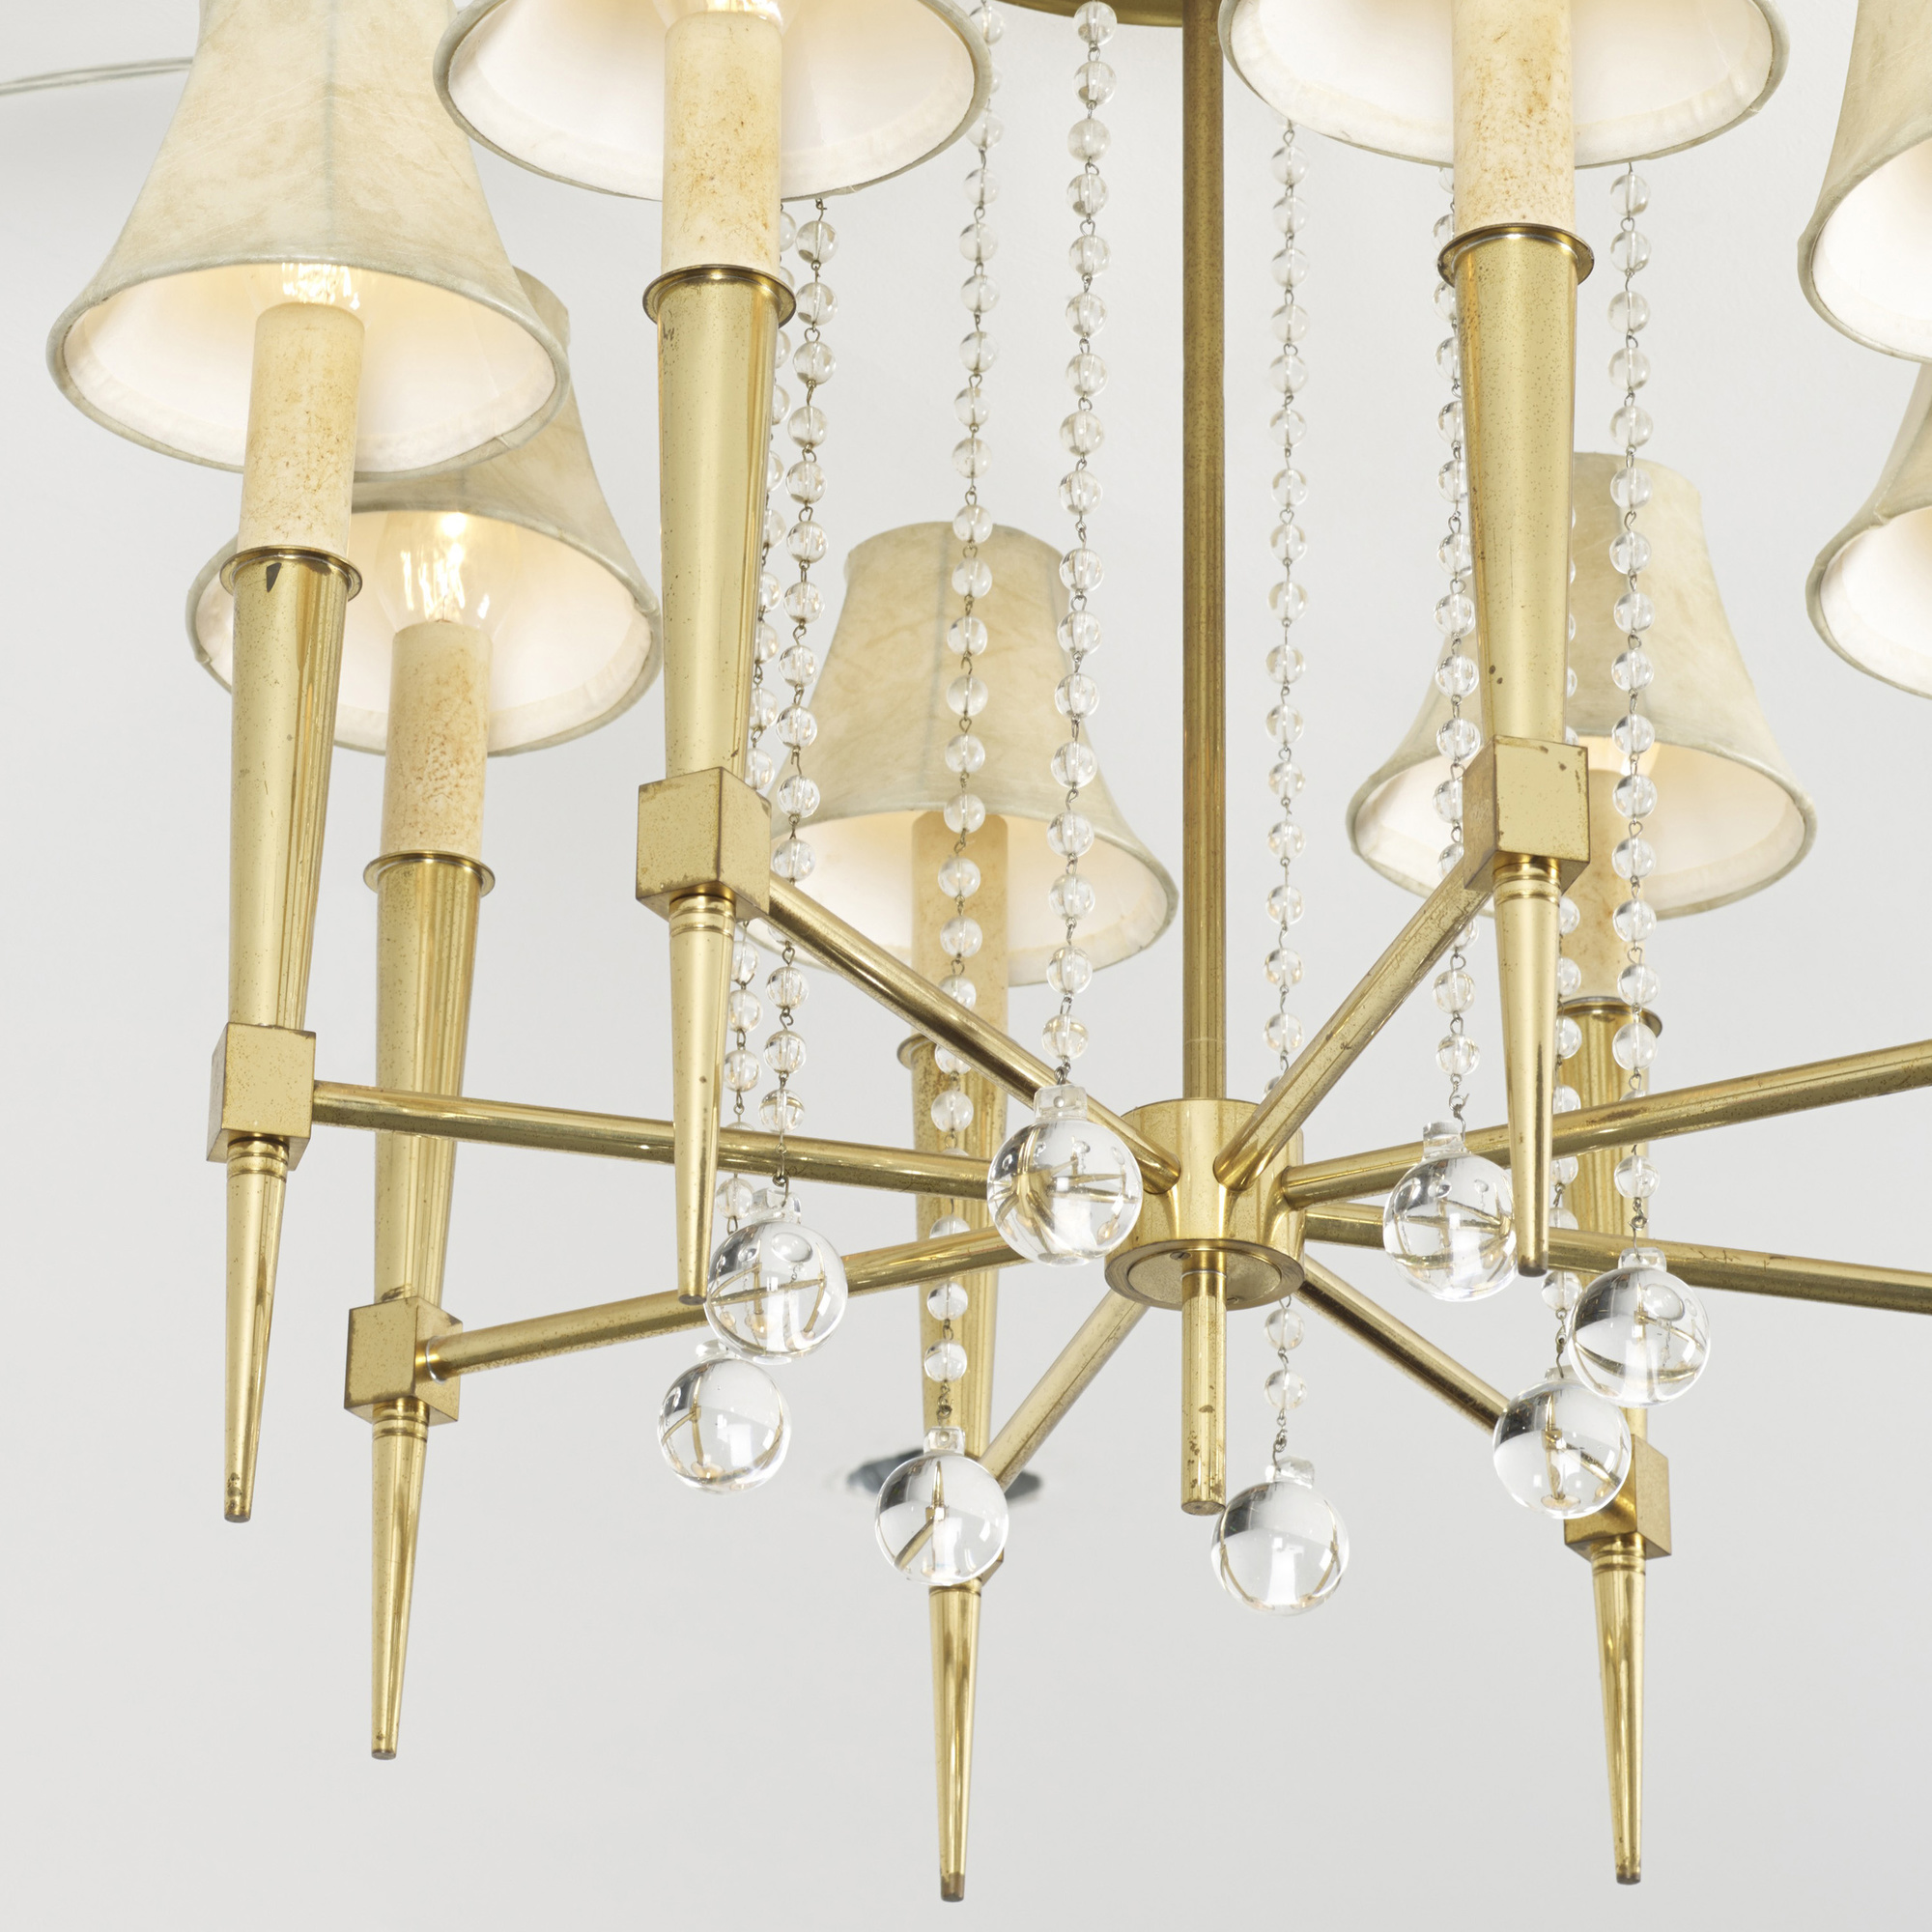 529 Tommi Parzinger Custom Chandelier From The Appleman Commission 2 Of 3